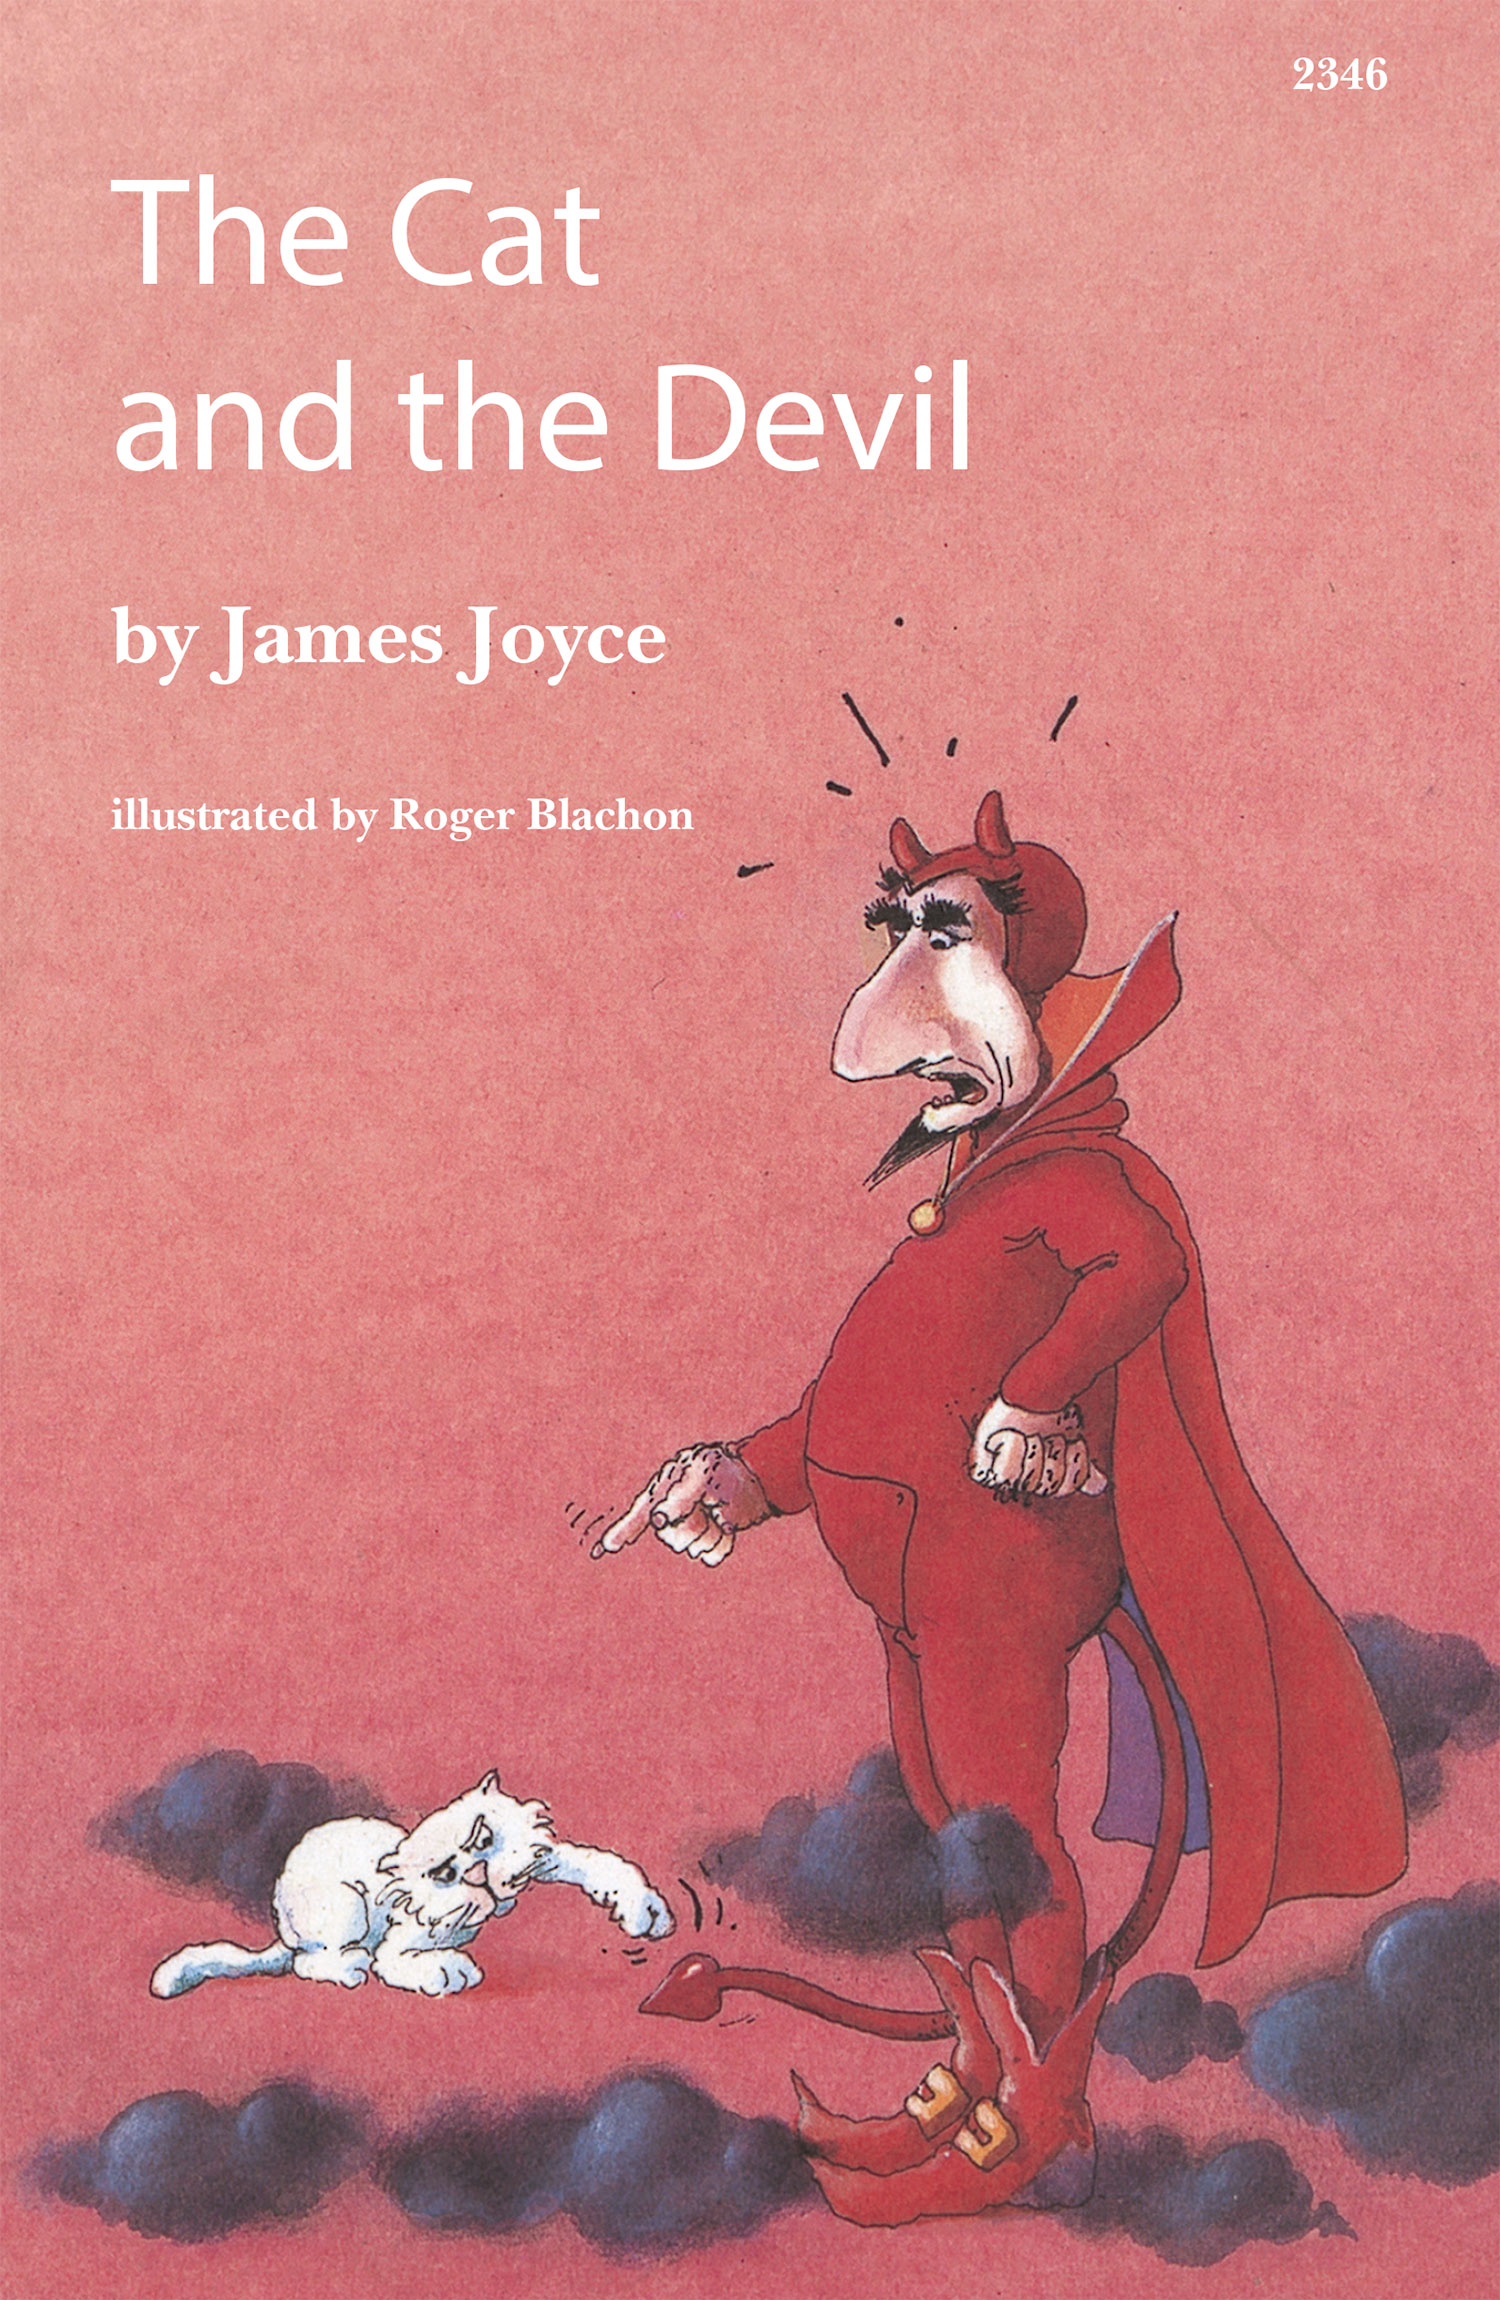 Preview image for LOM object The Cat and the Devil